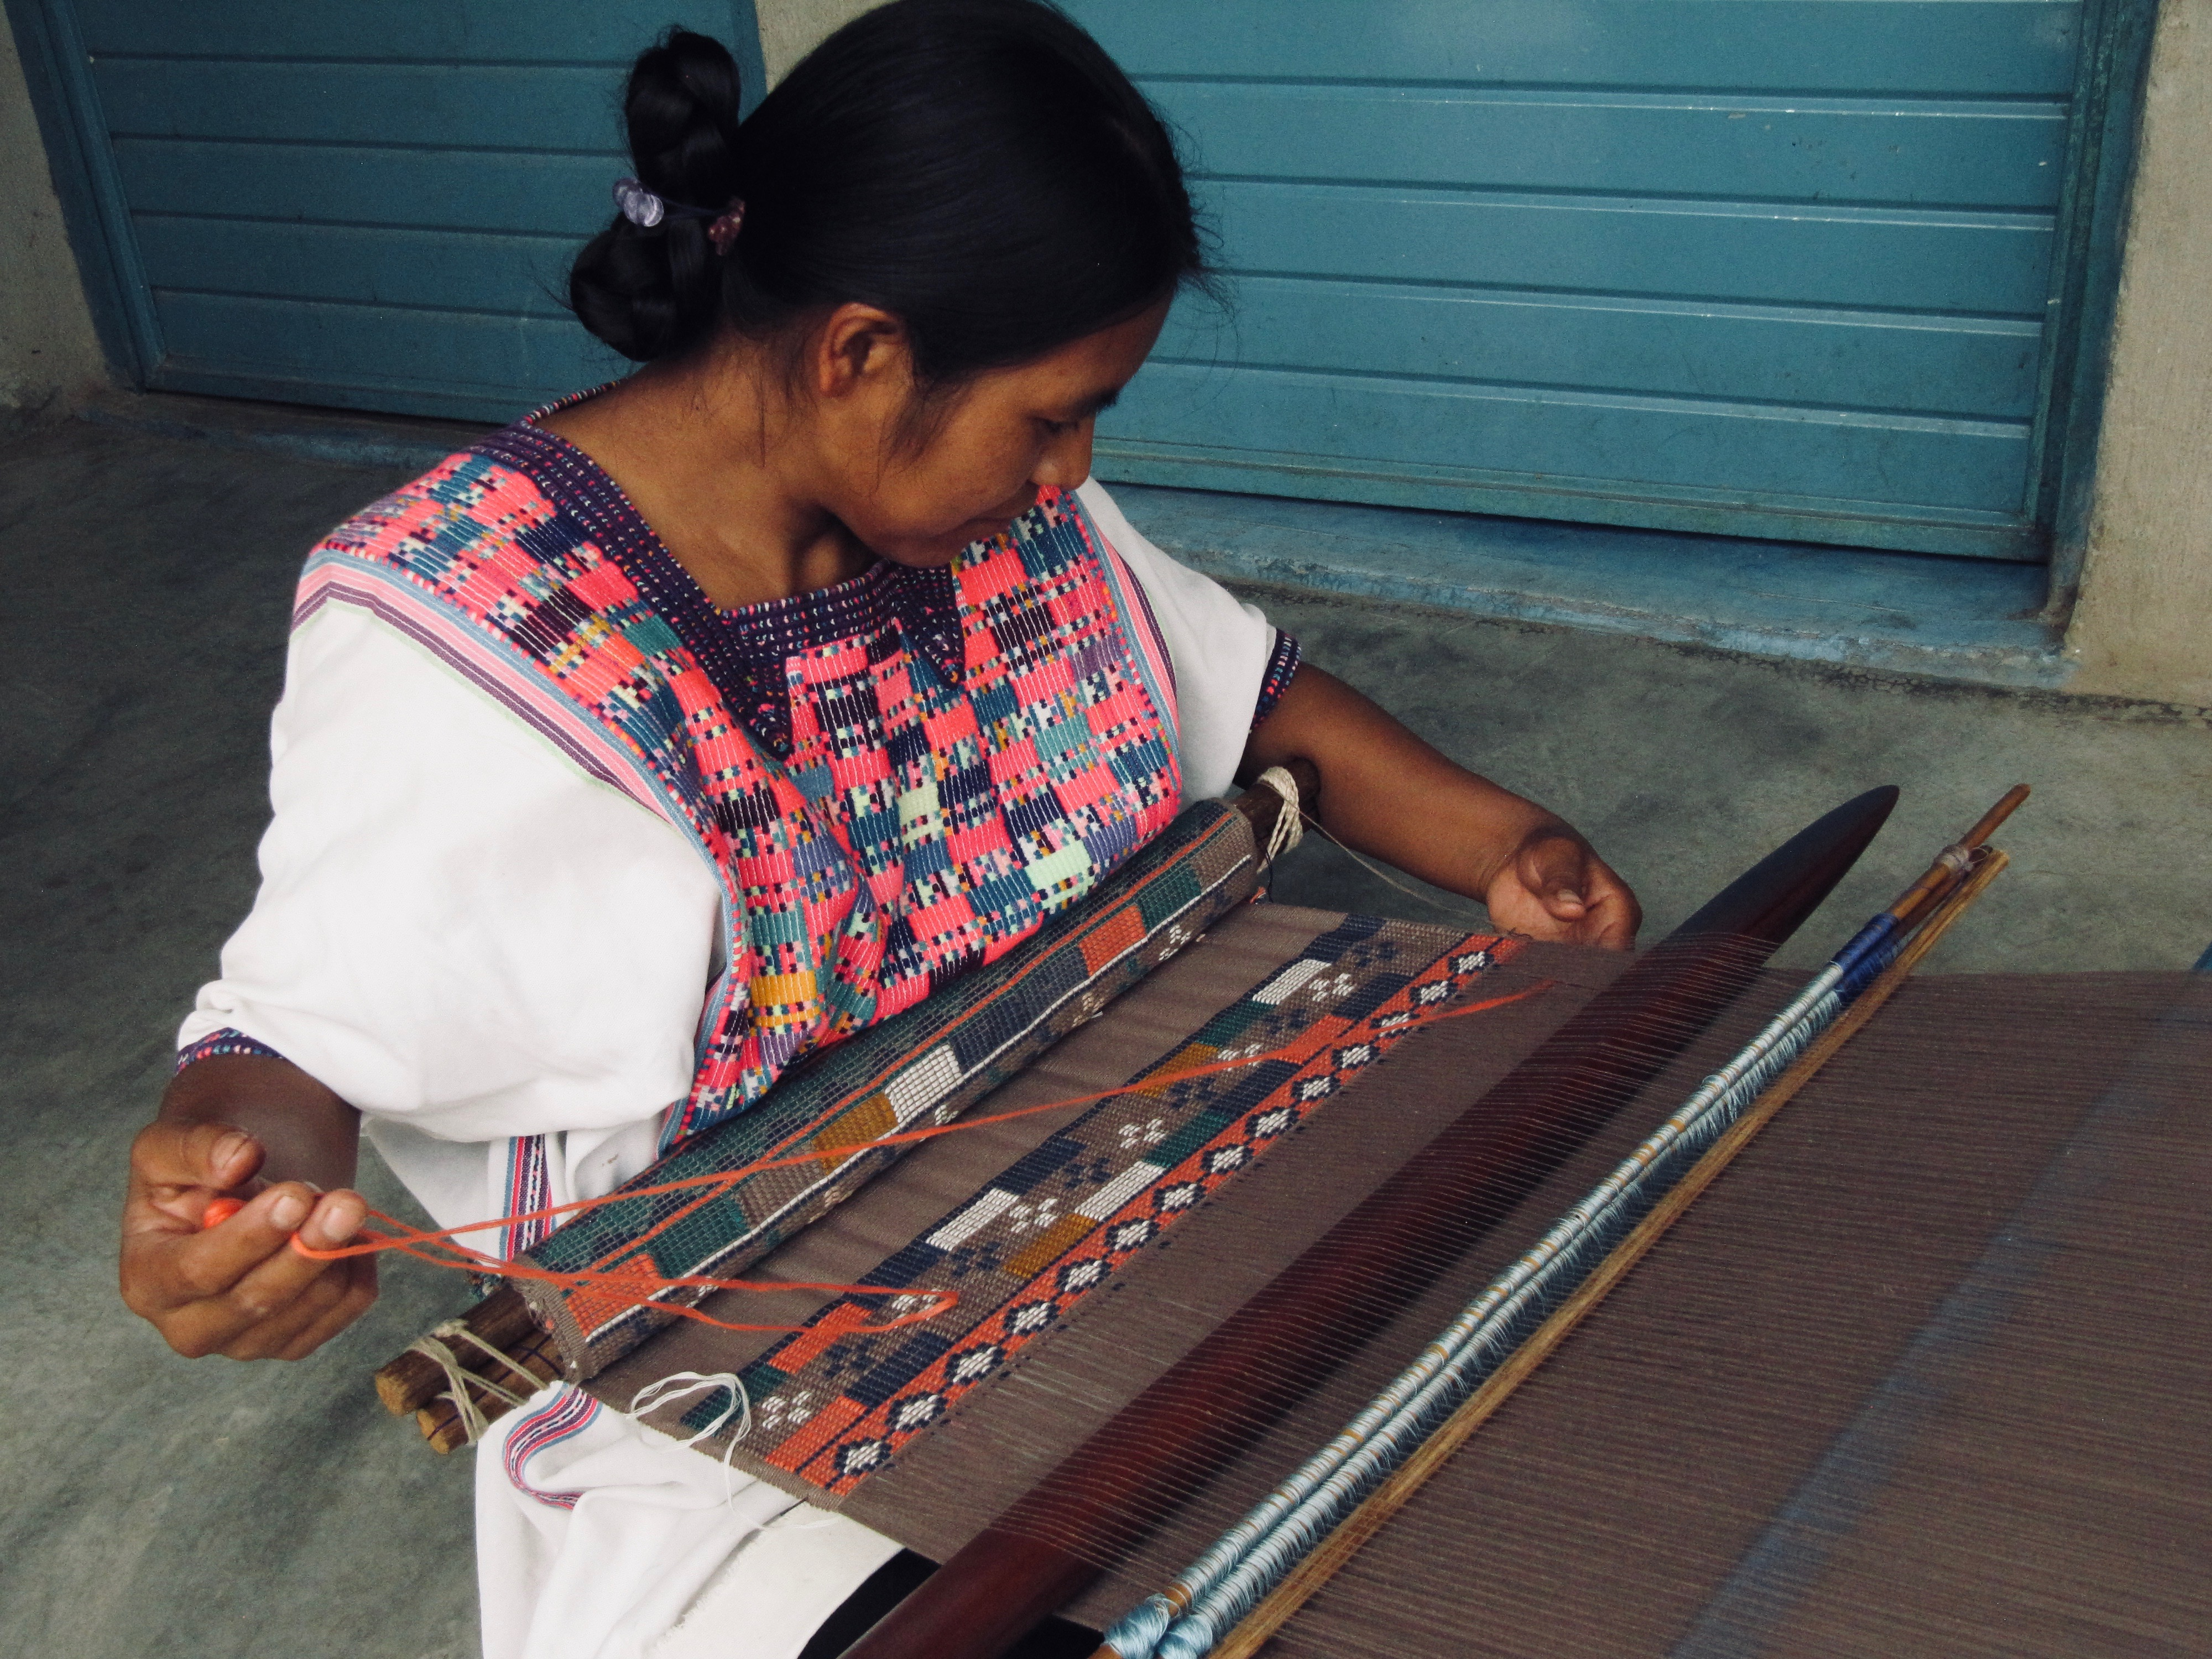 Anita, from Chiapas, creating the fabric for a cap using a backstrap